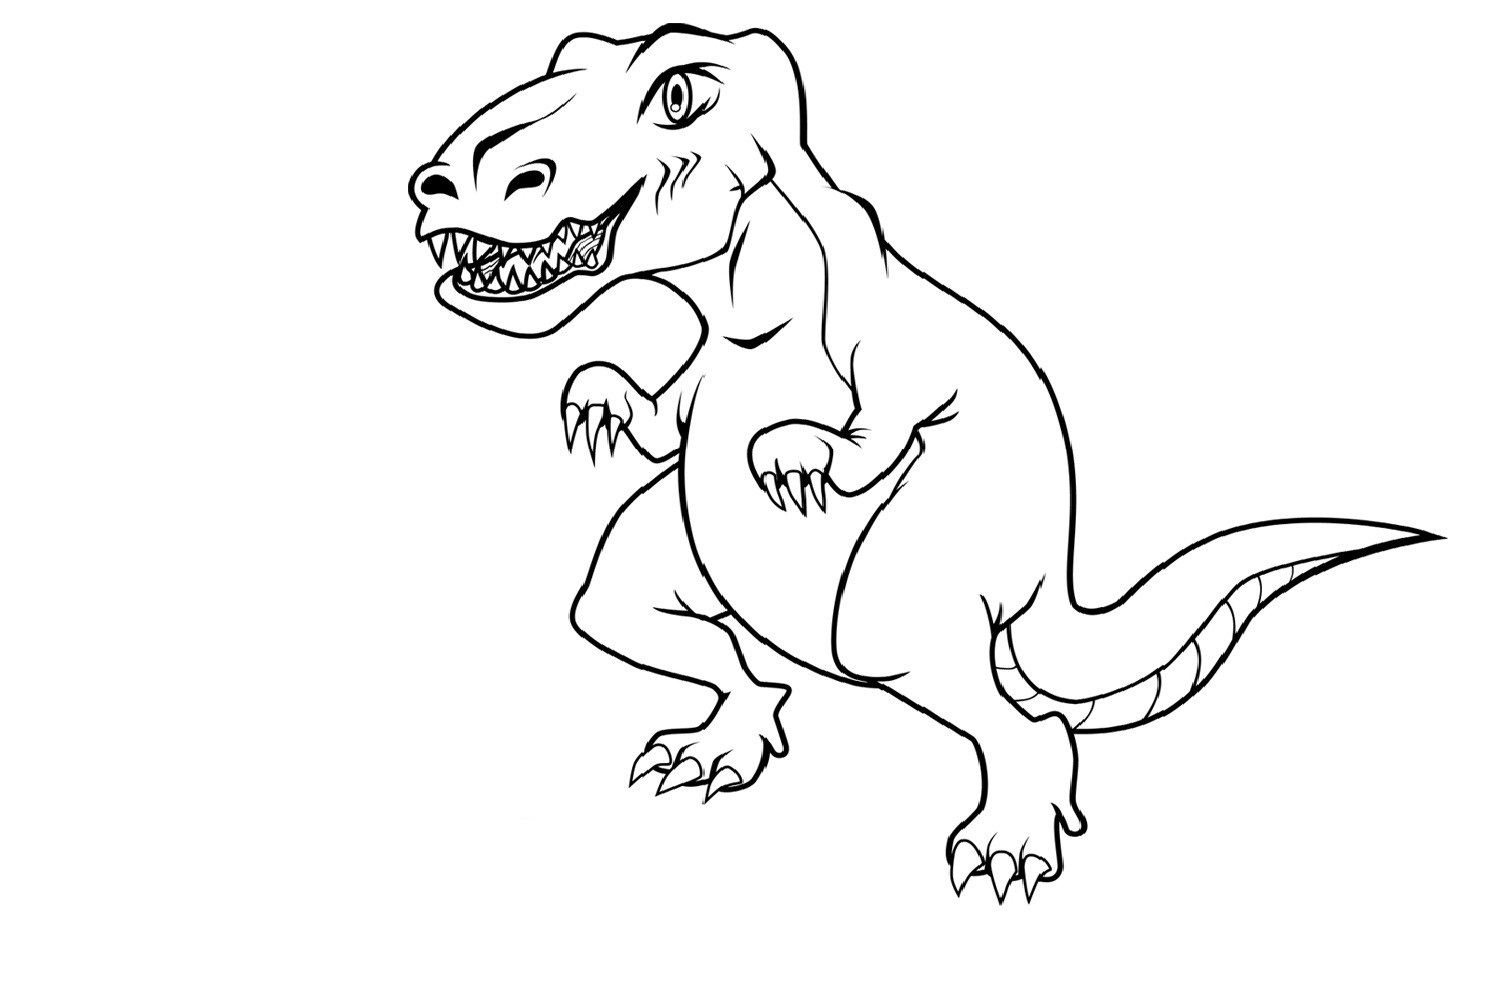 dino coloring games dinosaur coloring pages coloring pages to